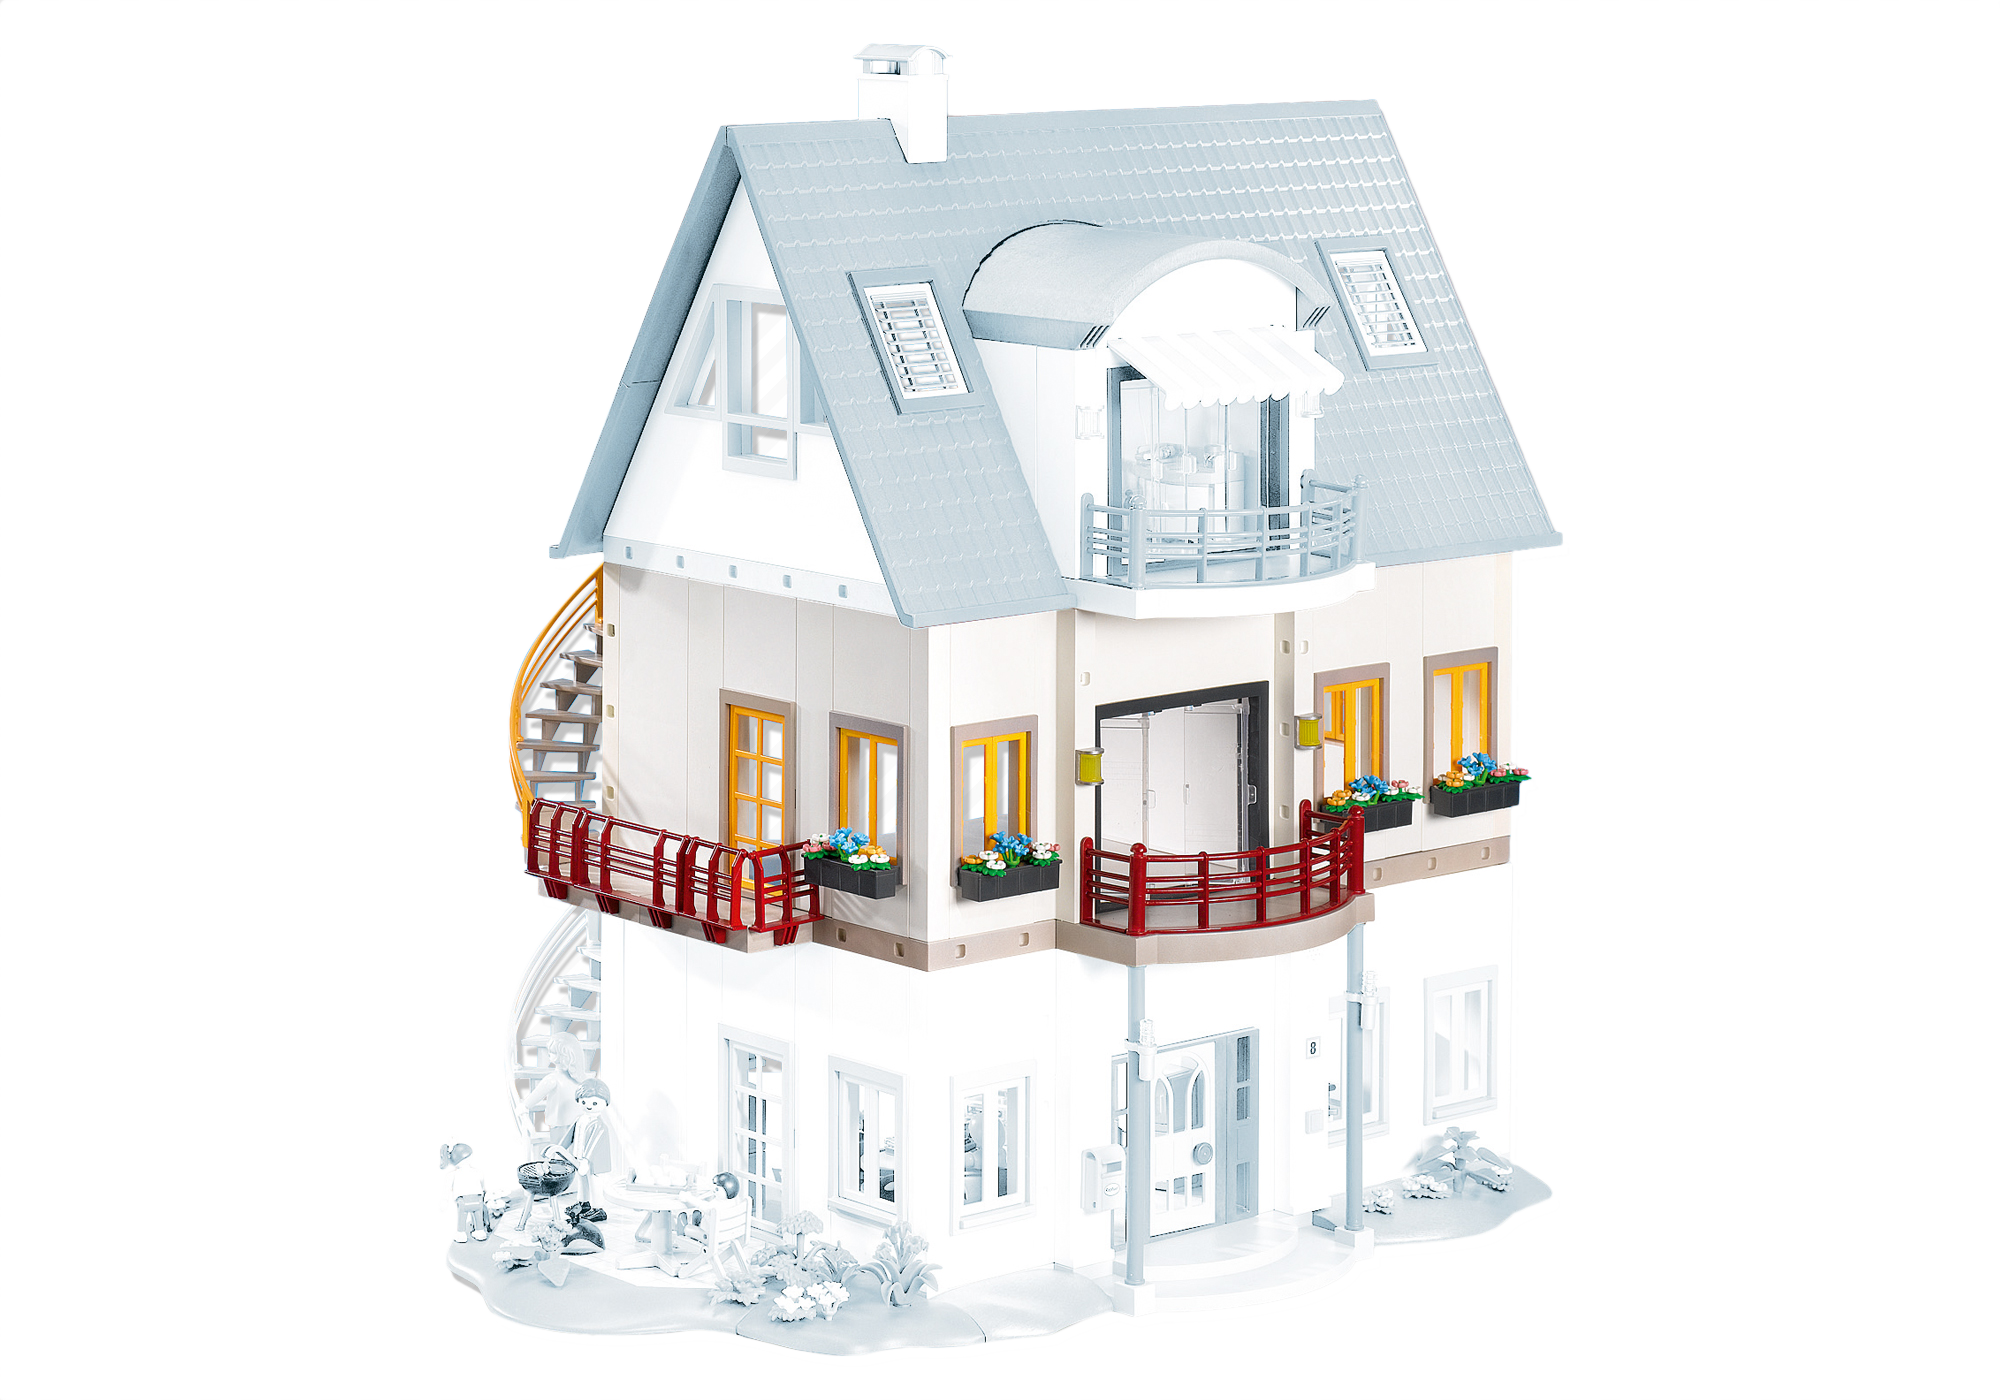 Maison moderne playmobil etage supplementaire for Agrandissement maison moderne playmobil